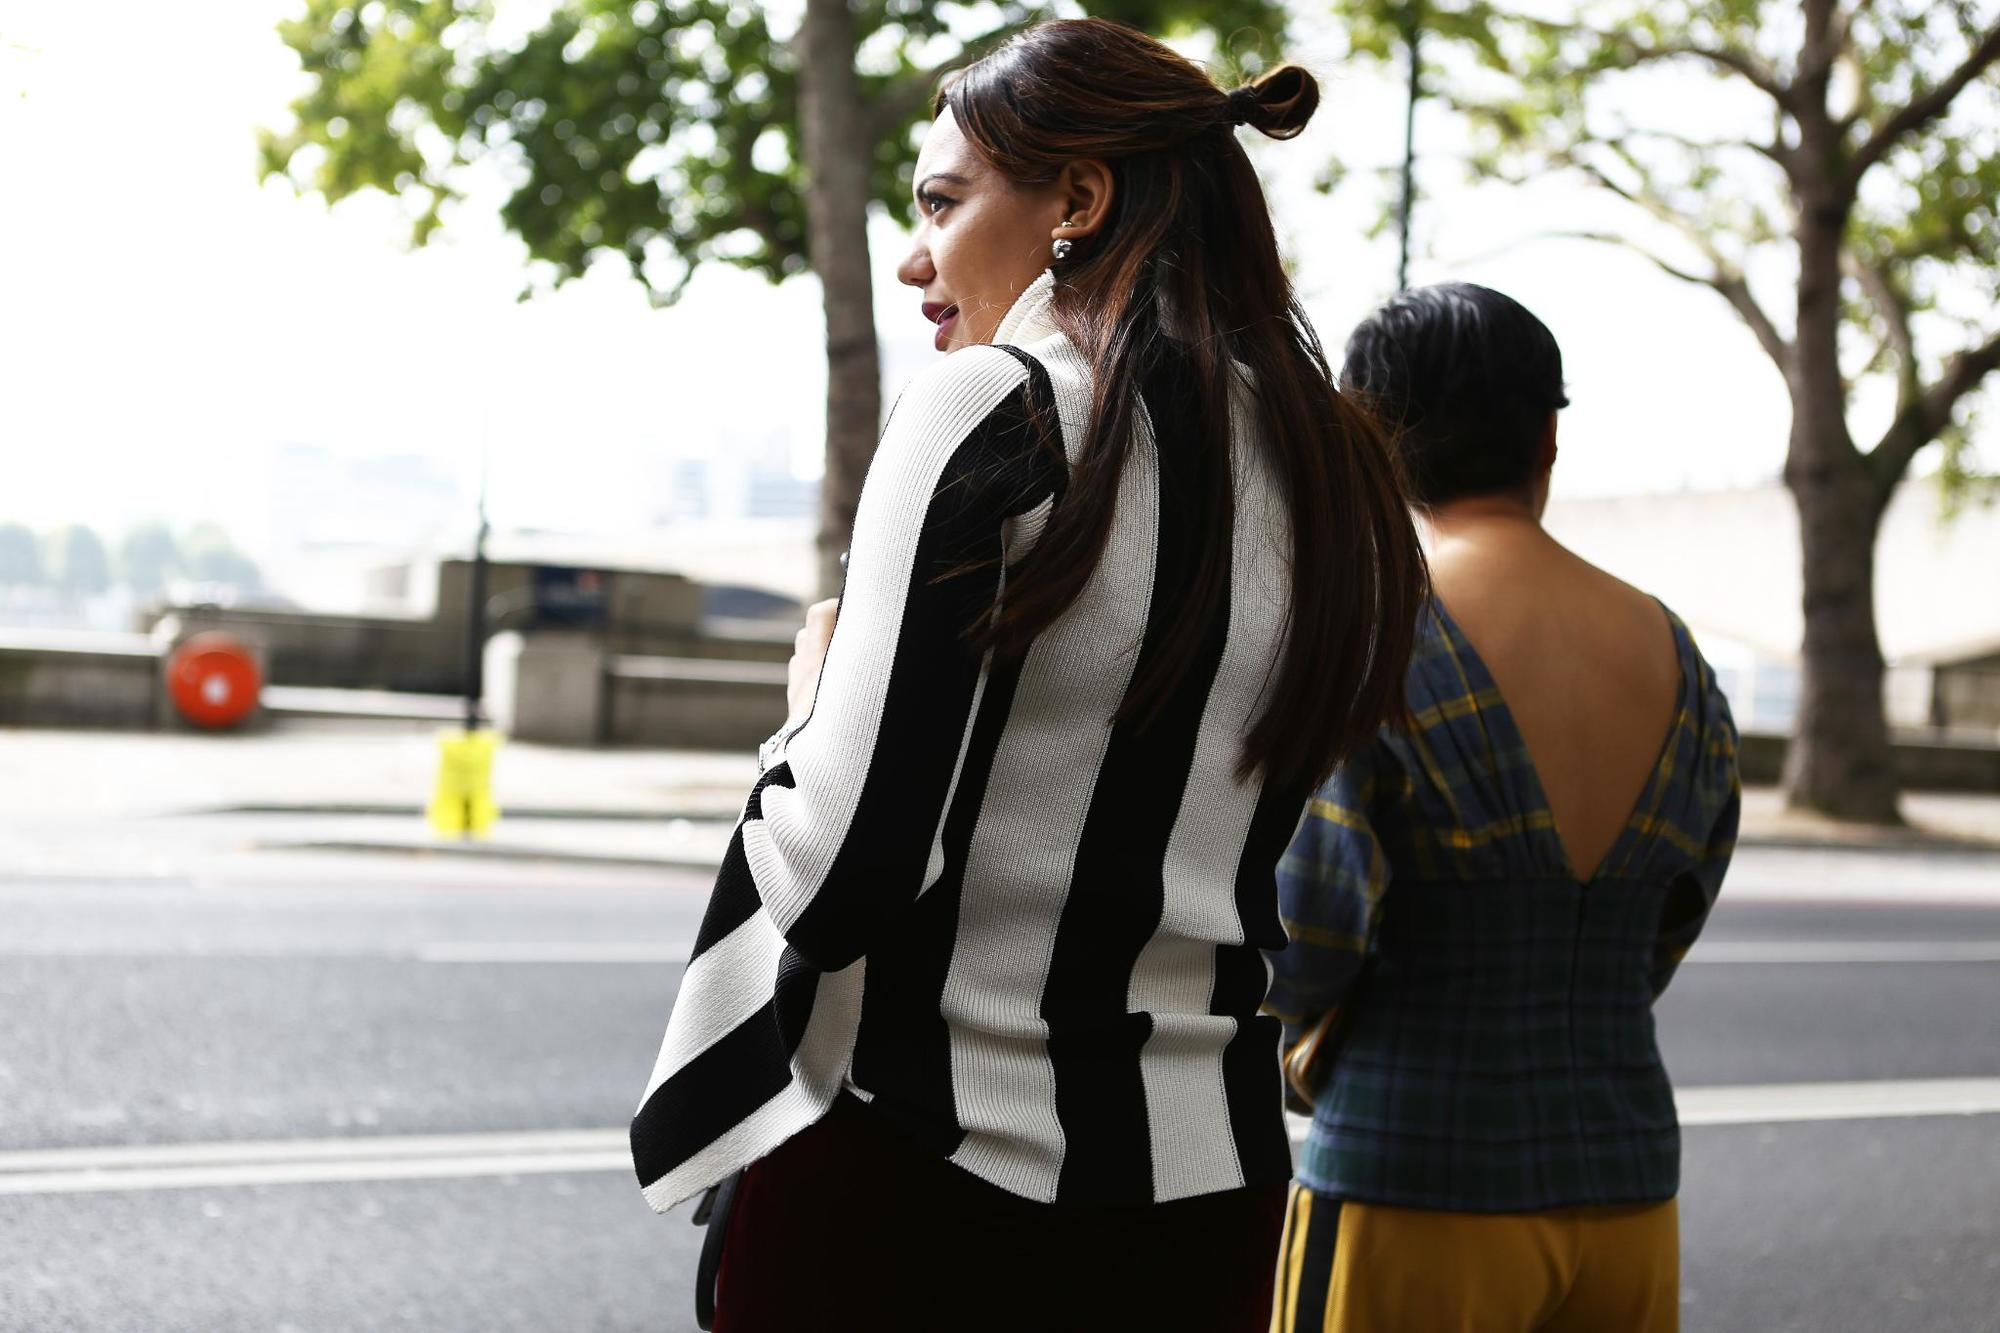 back side view of street style model with long dark hair in half-up, half-down bun